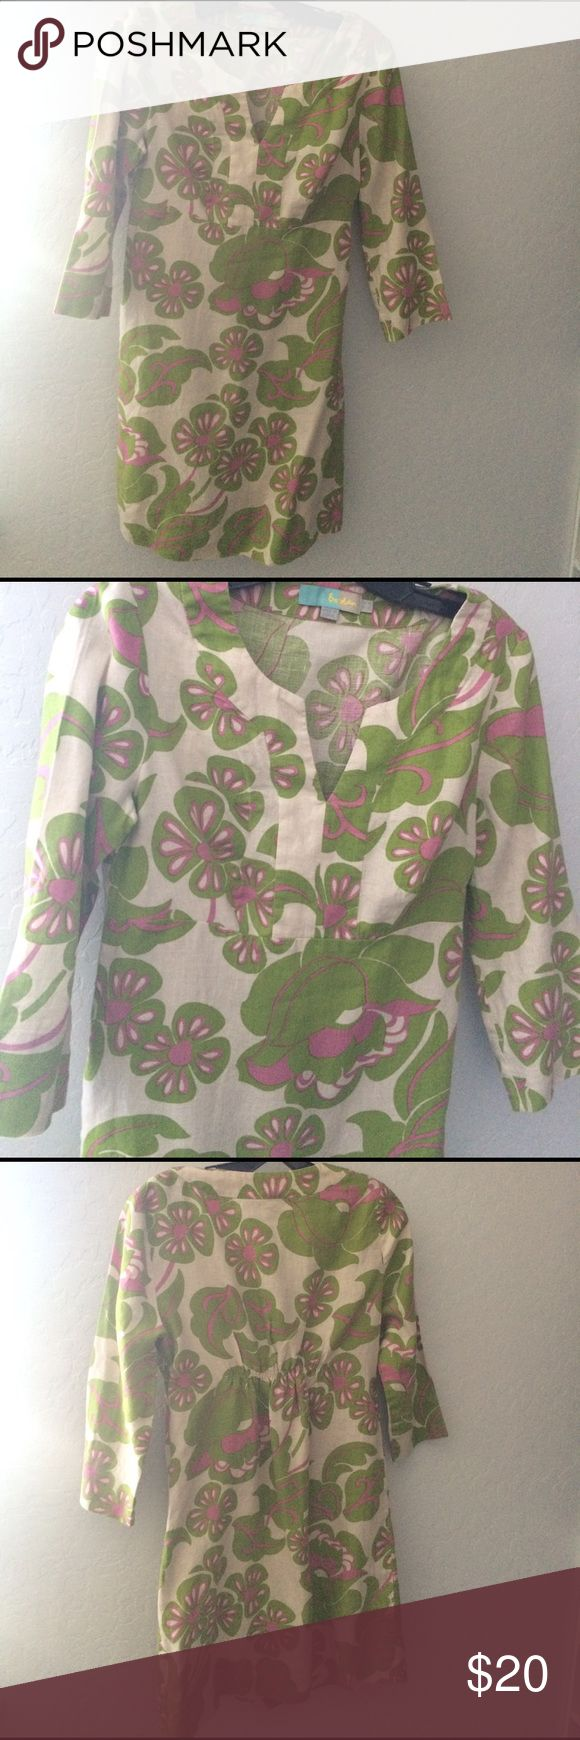 """Boden Dress Boden Dress in size US 4. Side zipper. Vintage looking material with green, pink and ivory. 3/4 sleeves. Gathered in back for a more form fitting.  17"""" from pit to pit and 32"""" long. 100 % linen but feels soft as though it was washed so please check measurements. It does look faded too. But very pretty! Boden Dresses Maxi"""